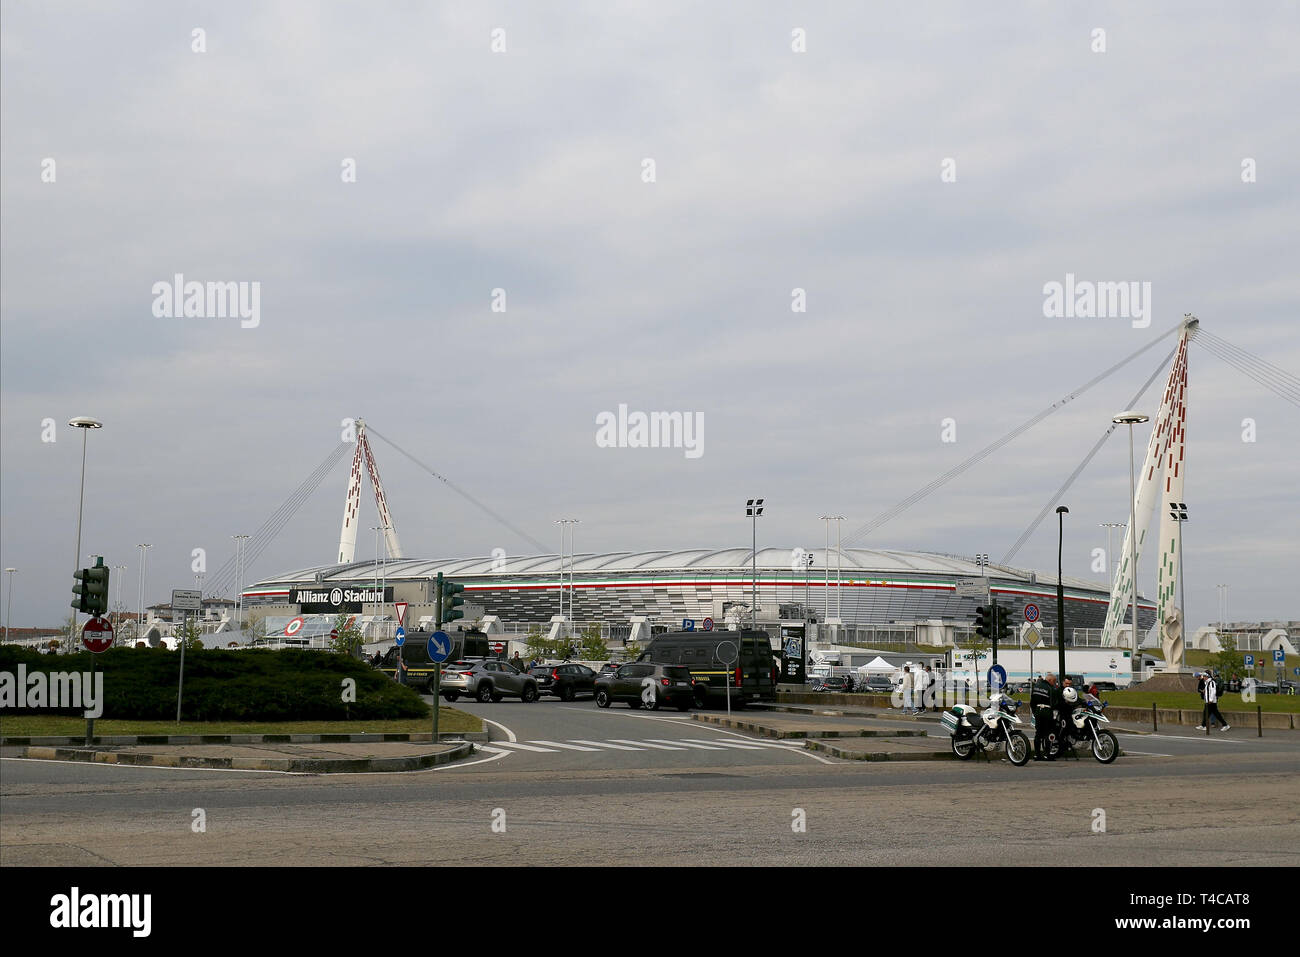 Juventus Stadium Exterior High Resolution Stock Photography And Images Alamy